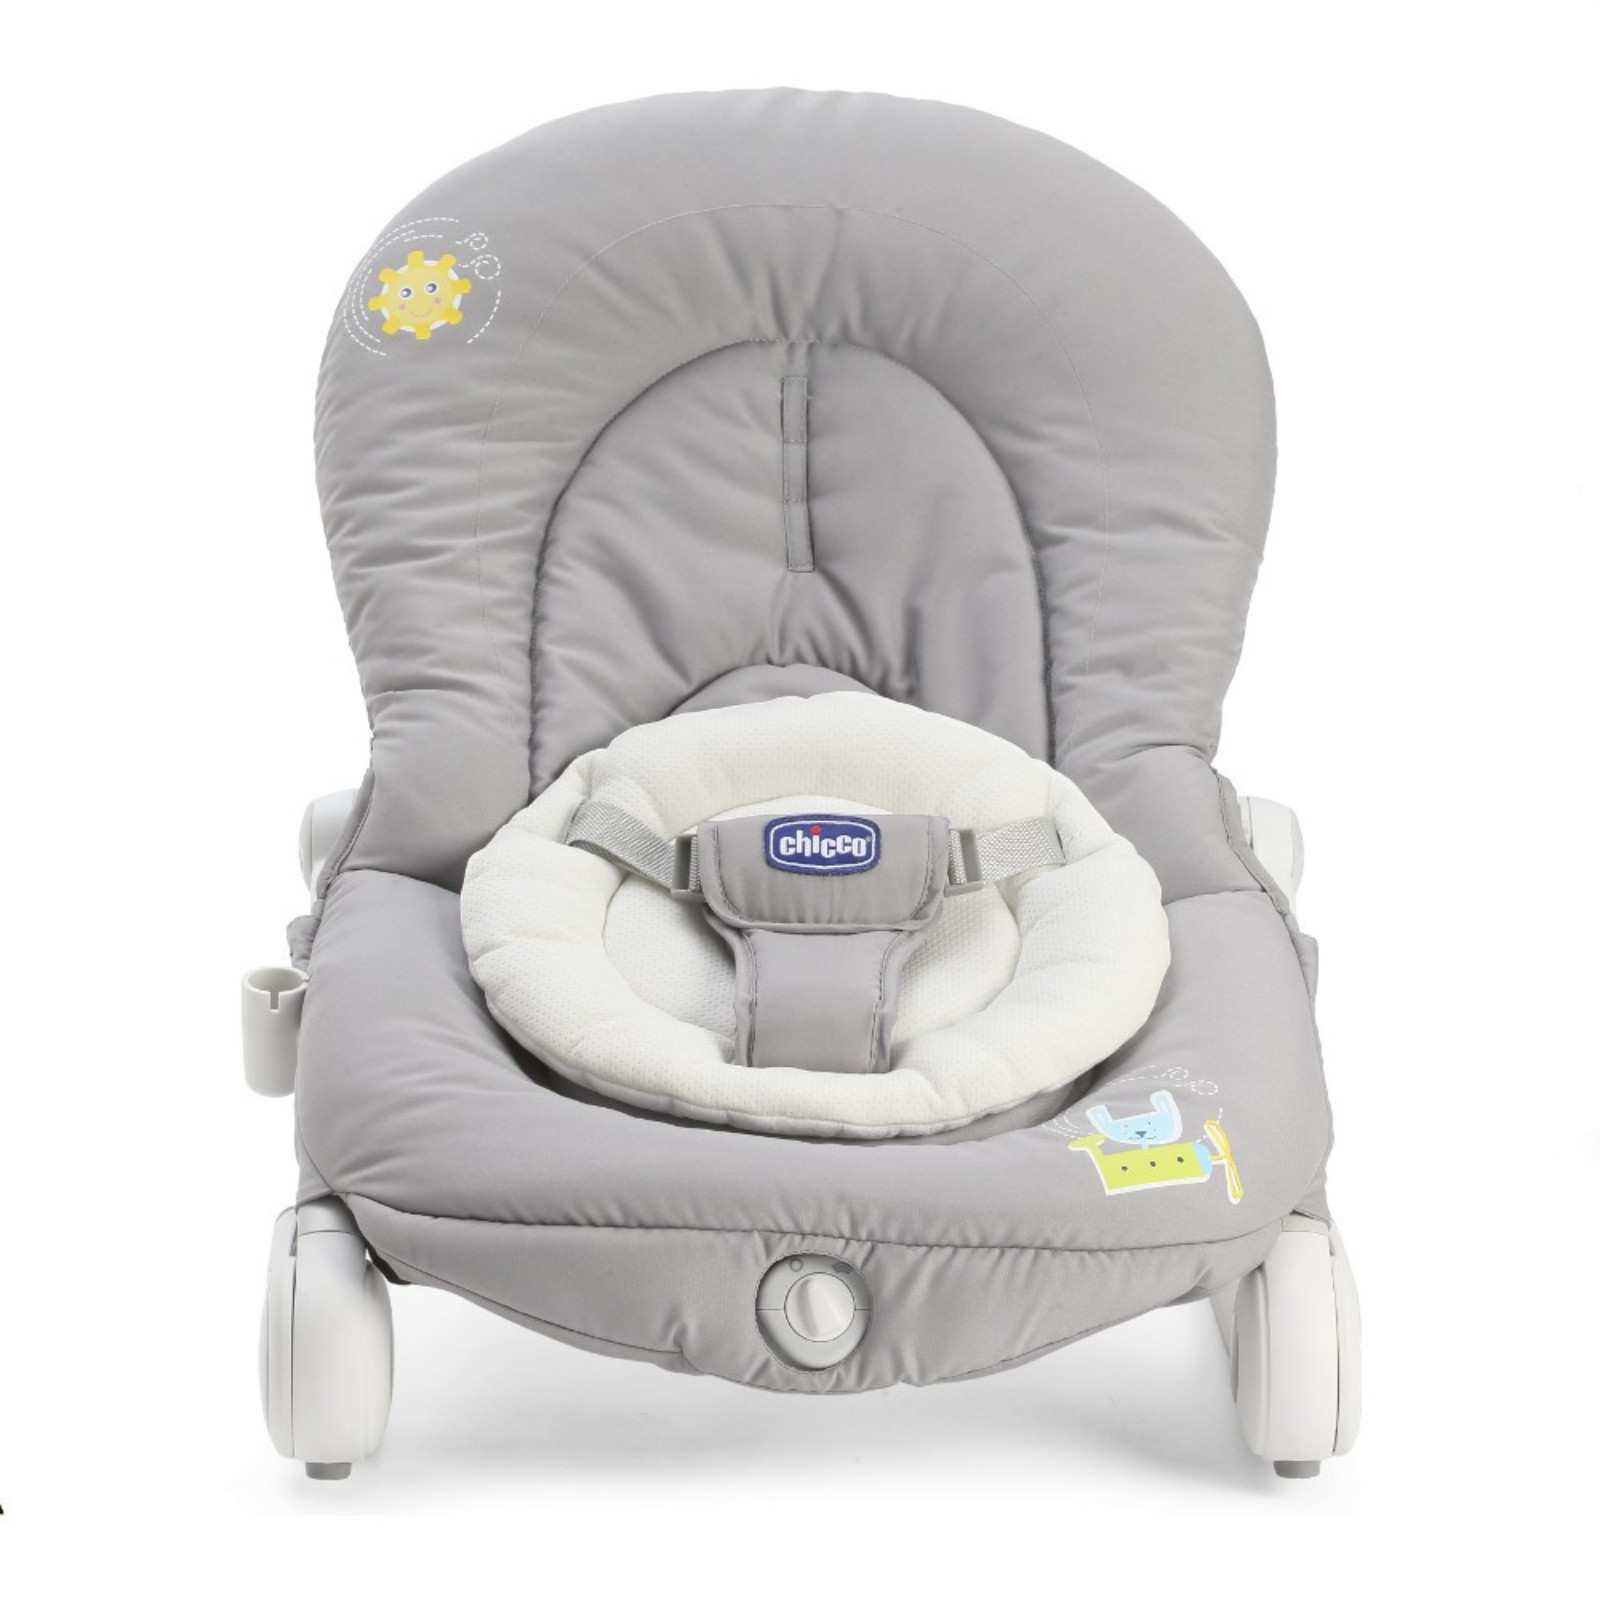 graco baby swing chair uk swivel office chicco balloon bouncer rocking dark grey